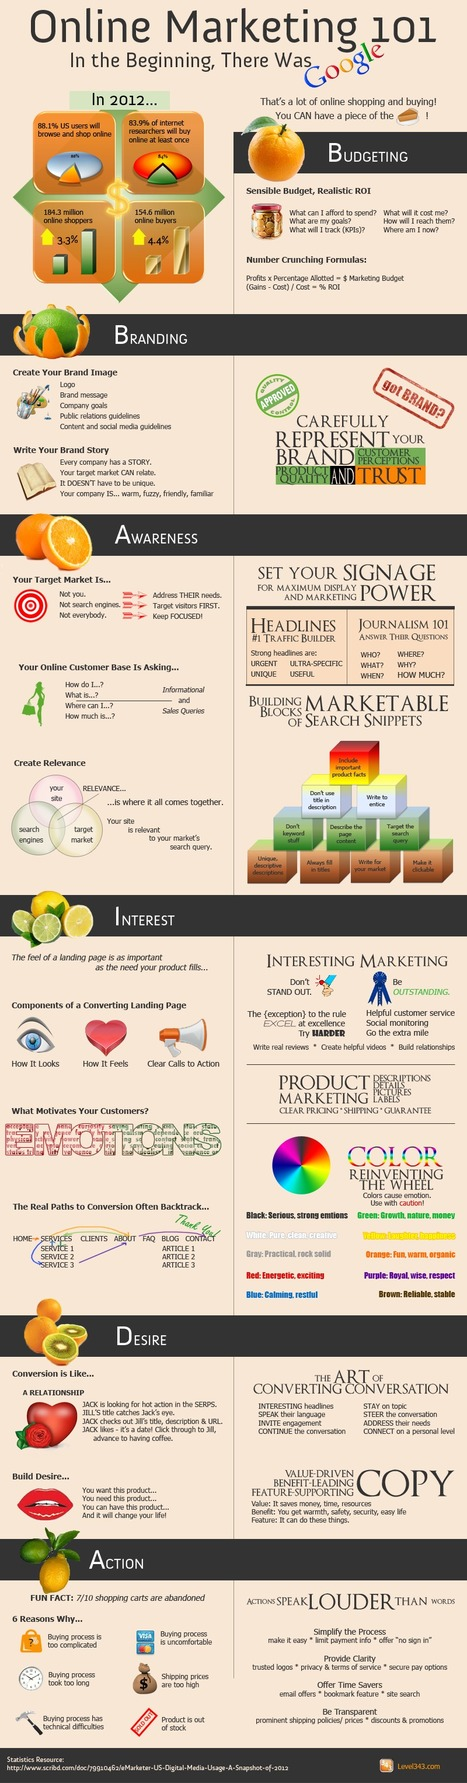 101 Online Marketing Tips Strategies from Google [INFOGRAPHIC] | Marketing&Advertising | Scoop.it